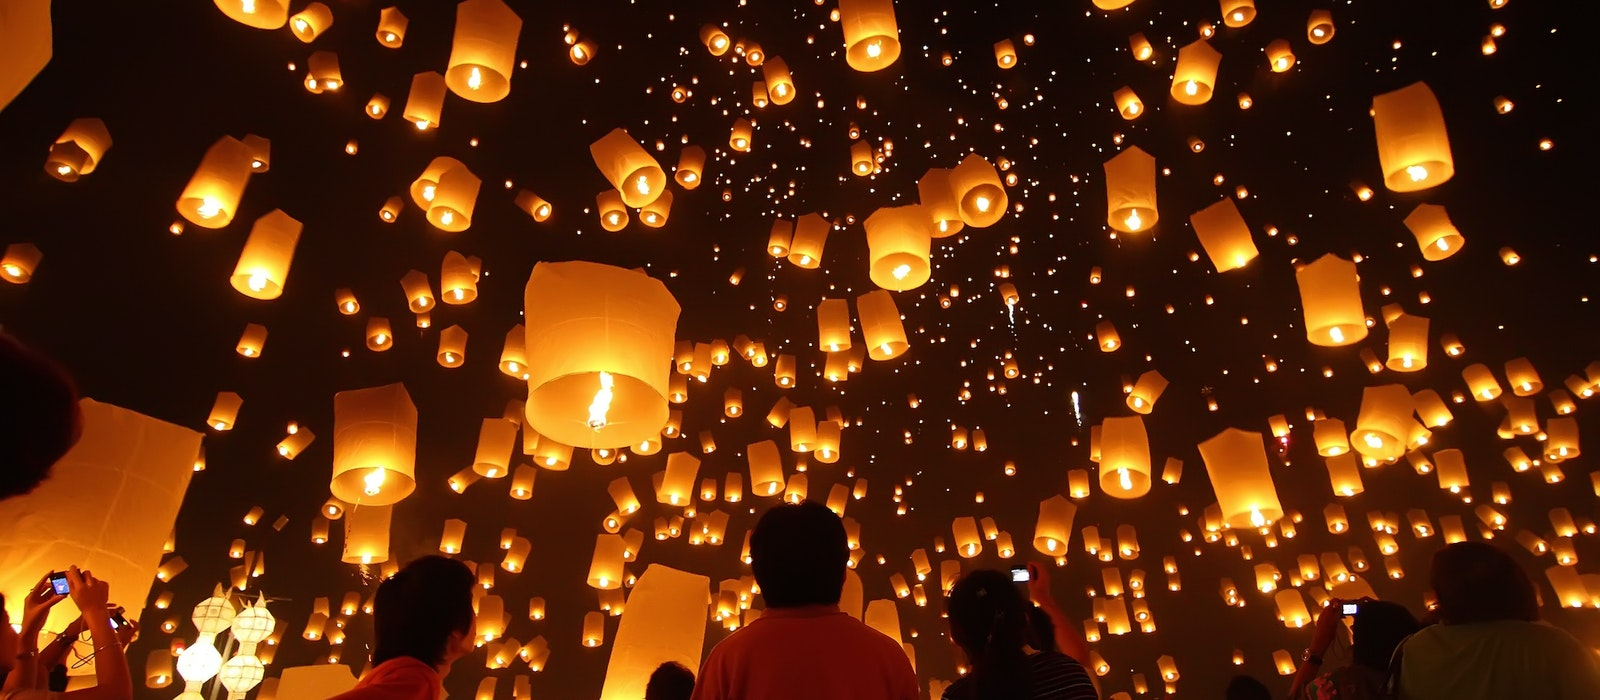 Traditional lanterns are commonly used to commemorate cultural and spiritual celebrations around the world.